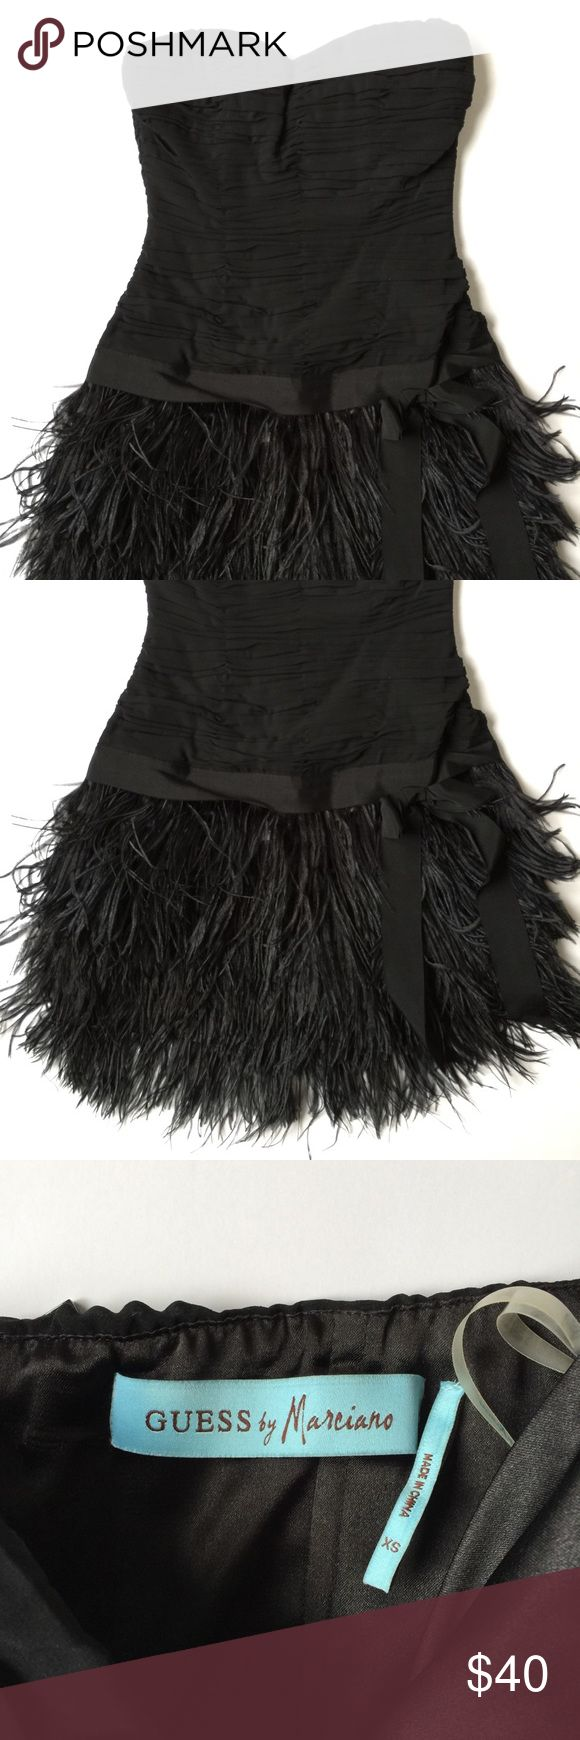 Guess by Marciano Feathered LBD Fun and flirty strapless LBD from Guess by Marciano. Flattering ruching around the top with a feathered skirt. Guess by Marciano Dresses Strapless